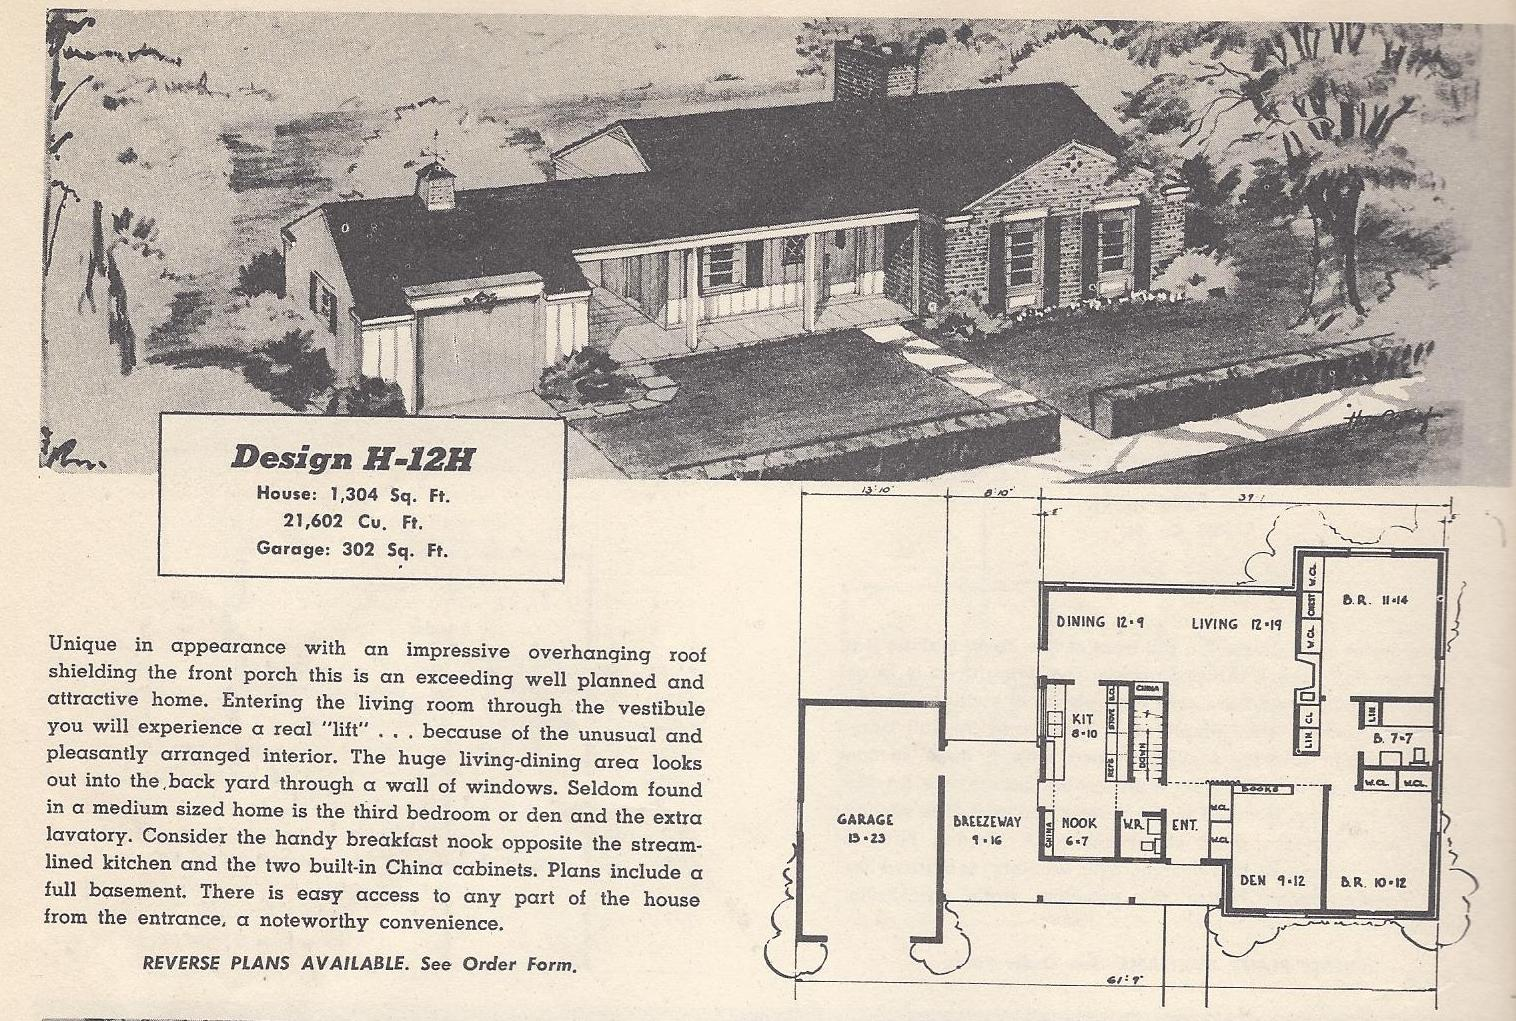 Vintage house plans 12h antique alter ego - Retro home design ...